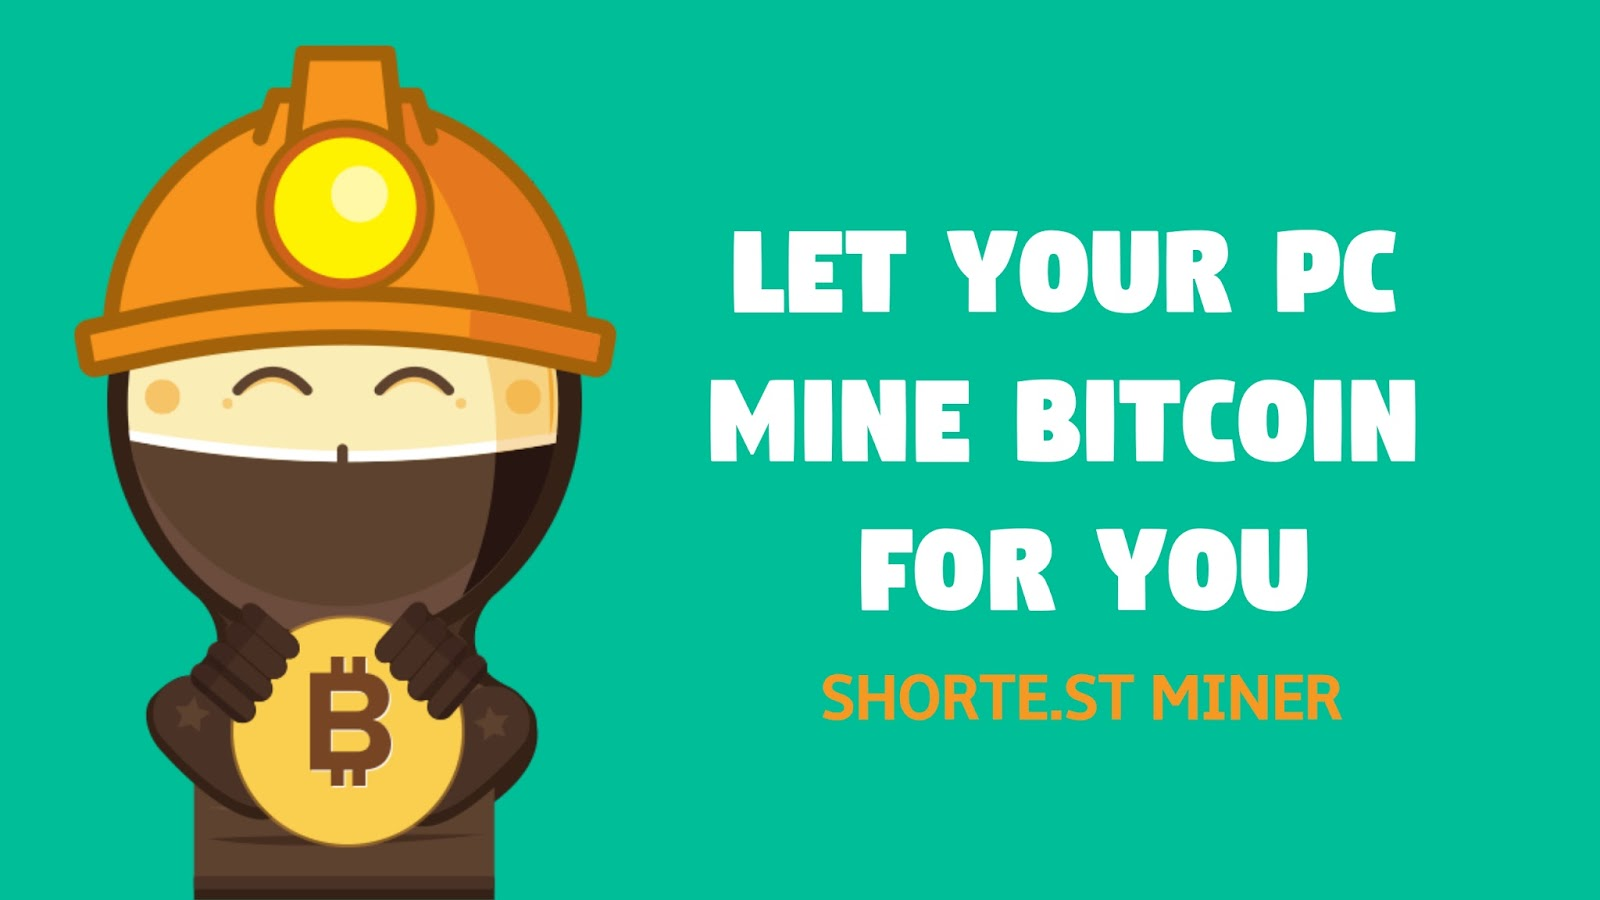 Shorte.st Miner - Let your computer mine Bitcoin for you!